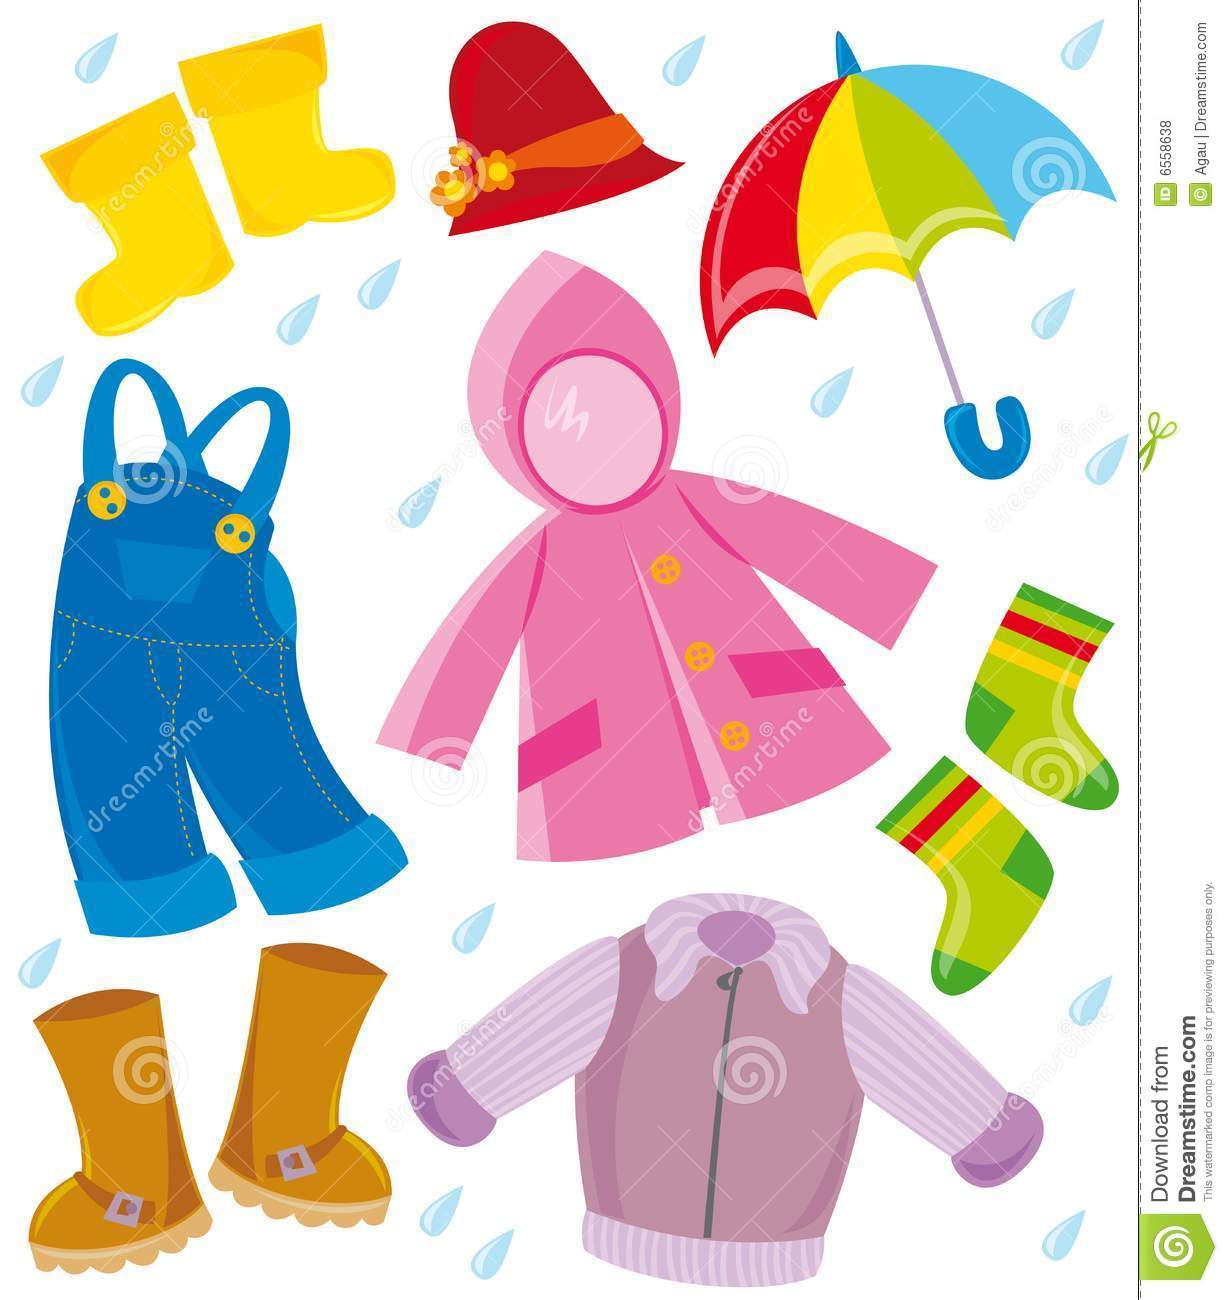 Spring clothing clipart 2 » Clipart Portal.